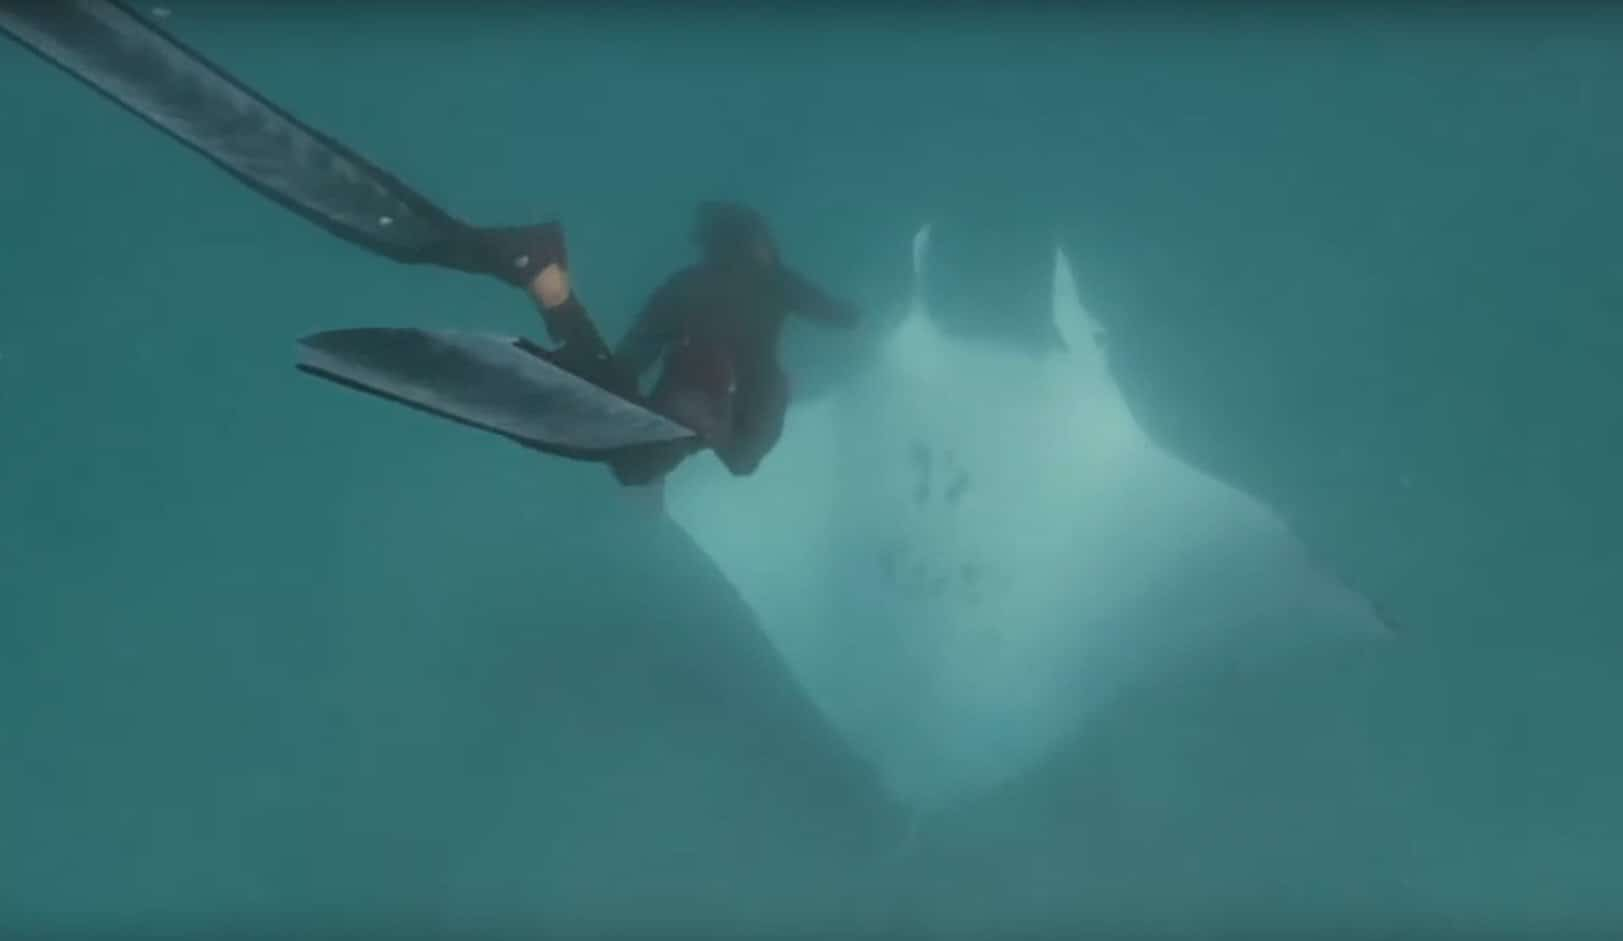 manta ray asks for help